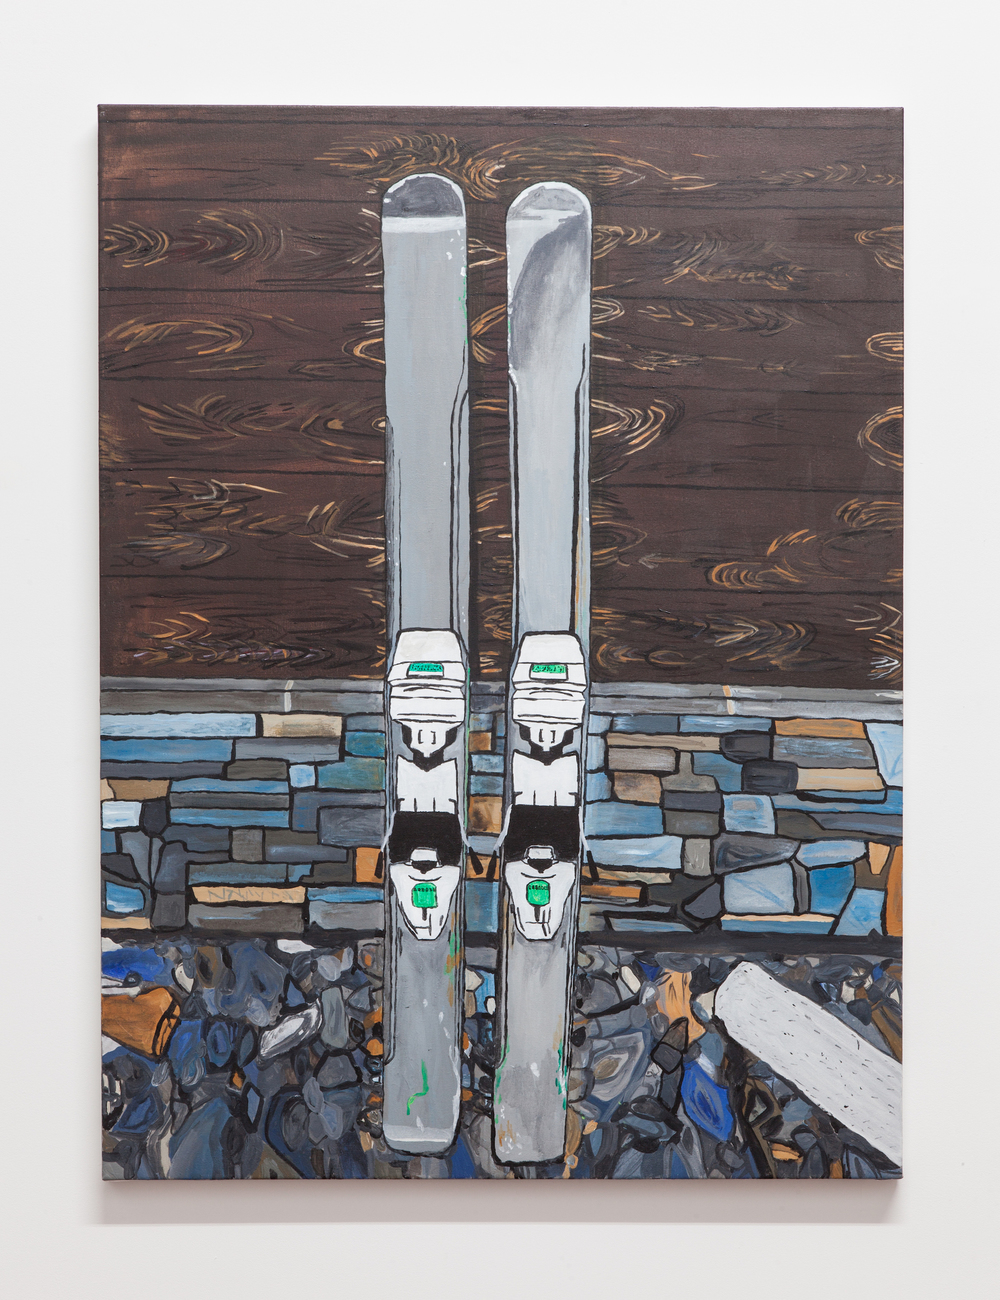 Jocko Weyland,  Volkls , 2014, acrylic on canvas, 48 x 36 in